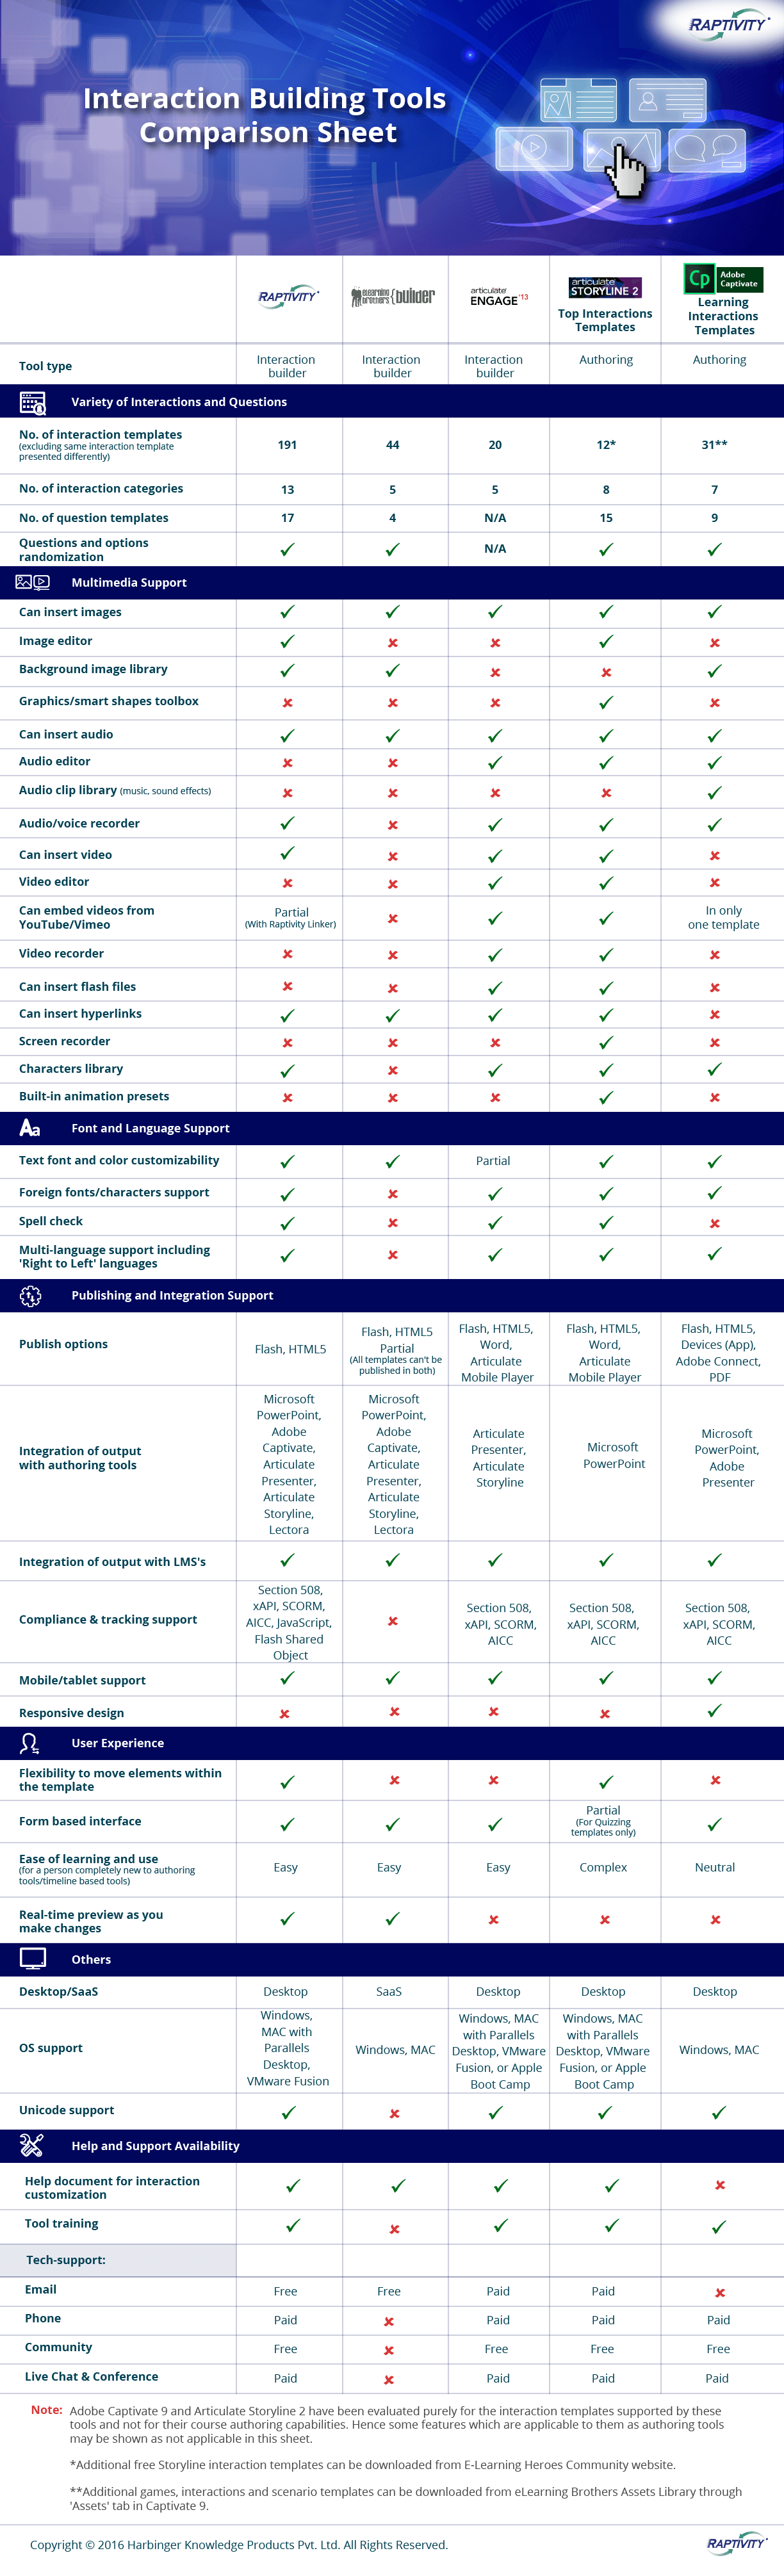 elearning comparison tool infographic